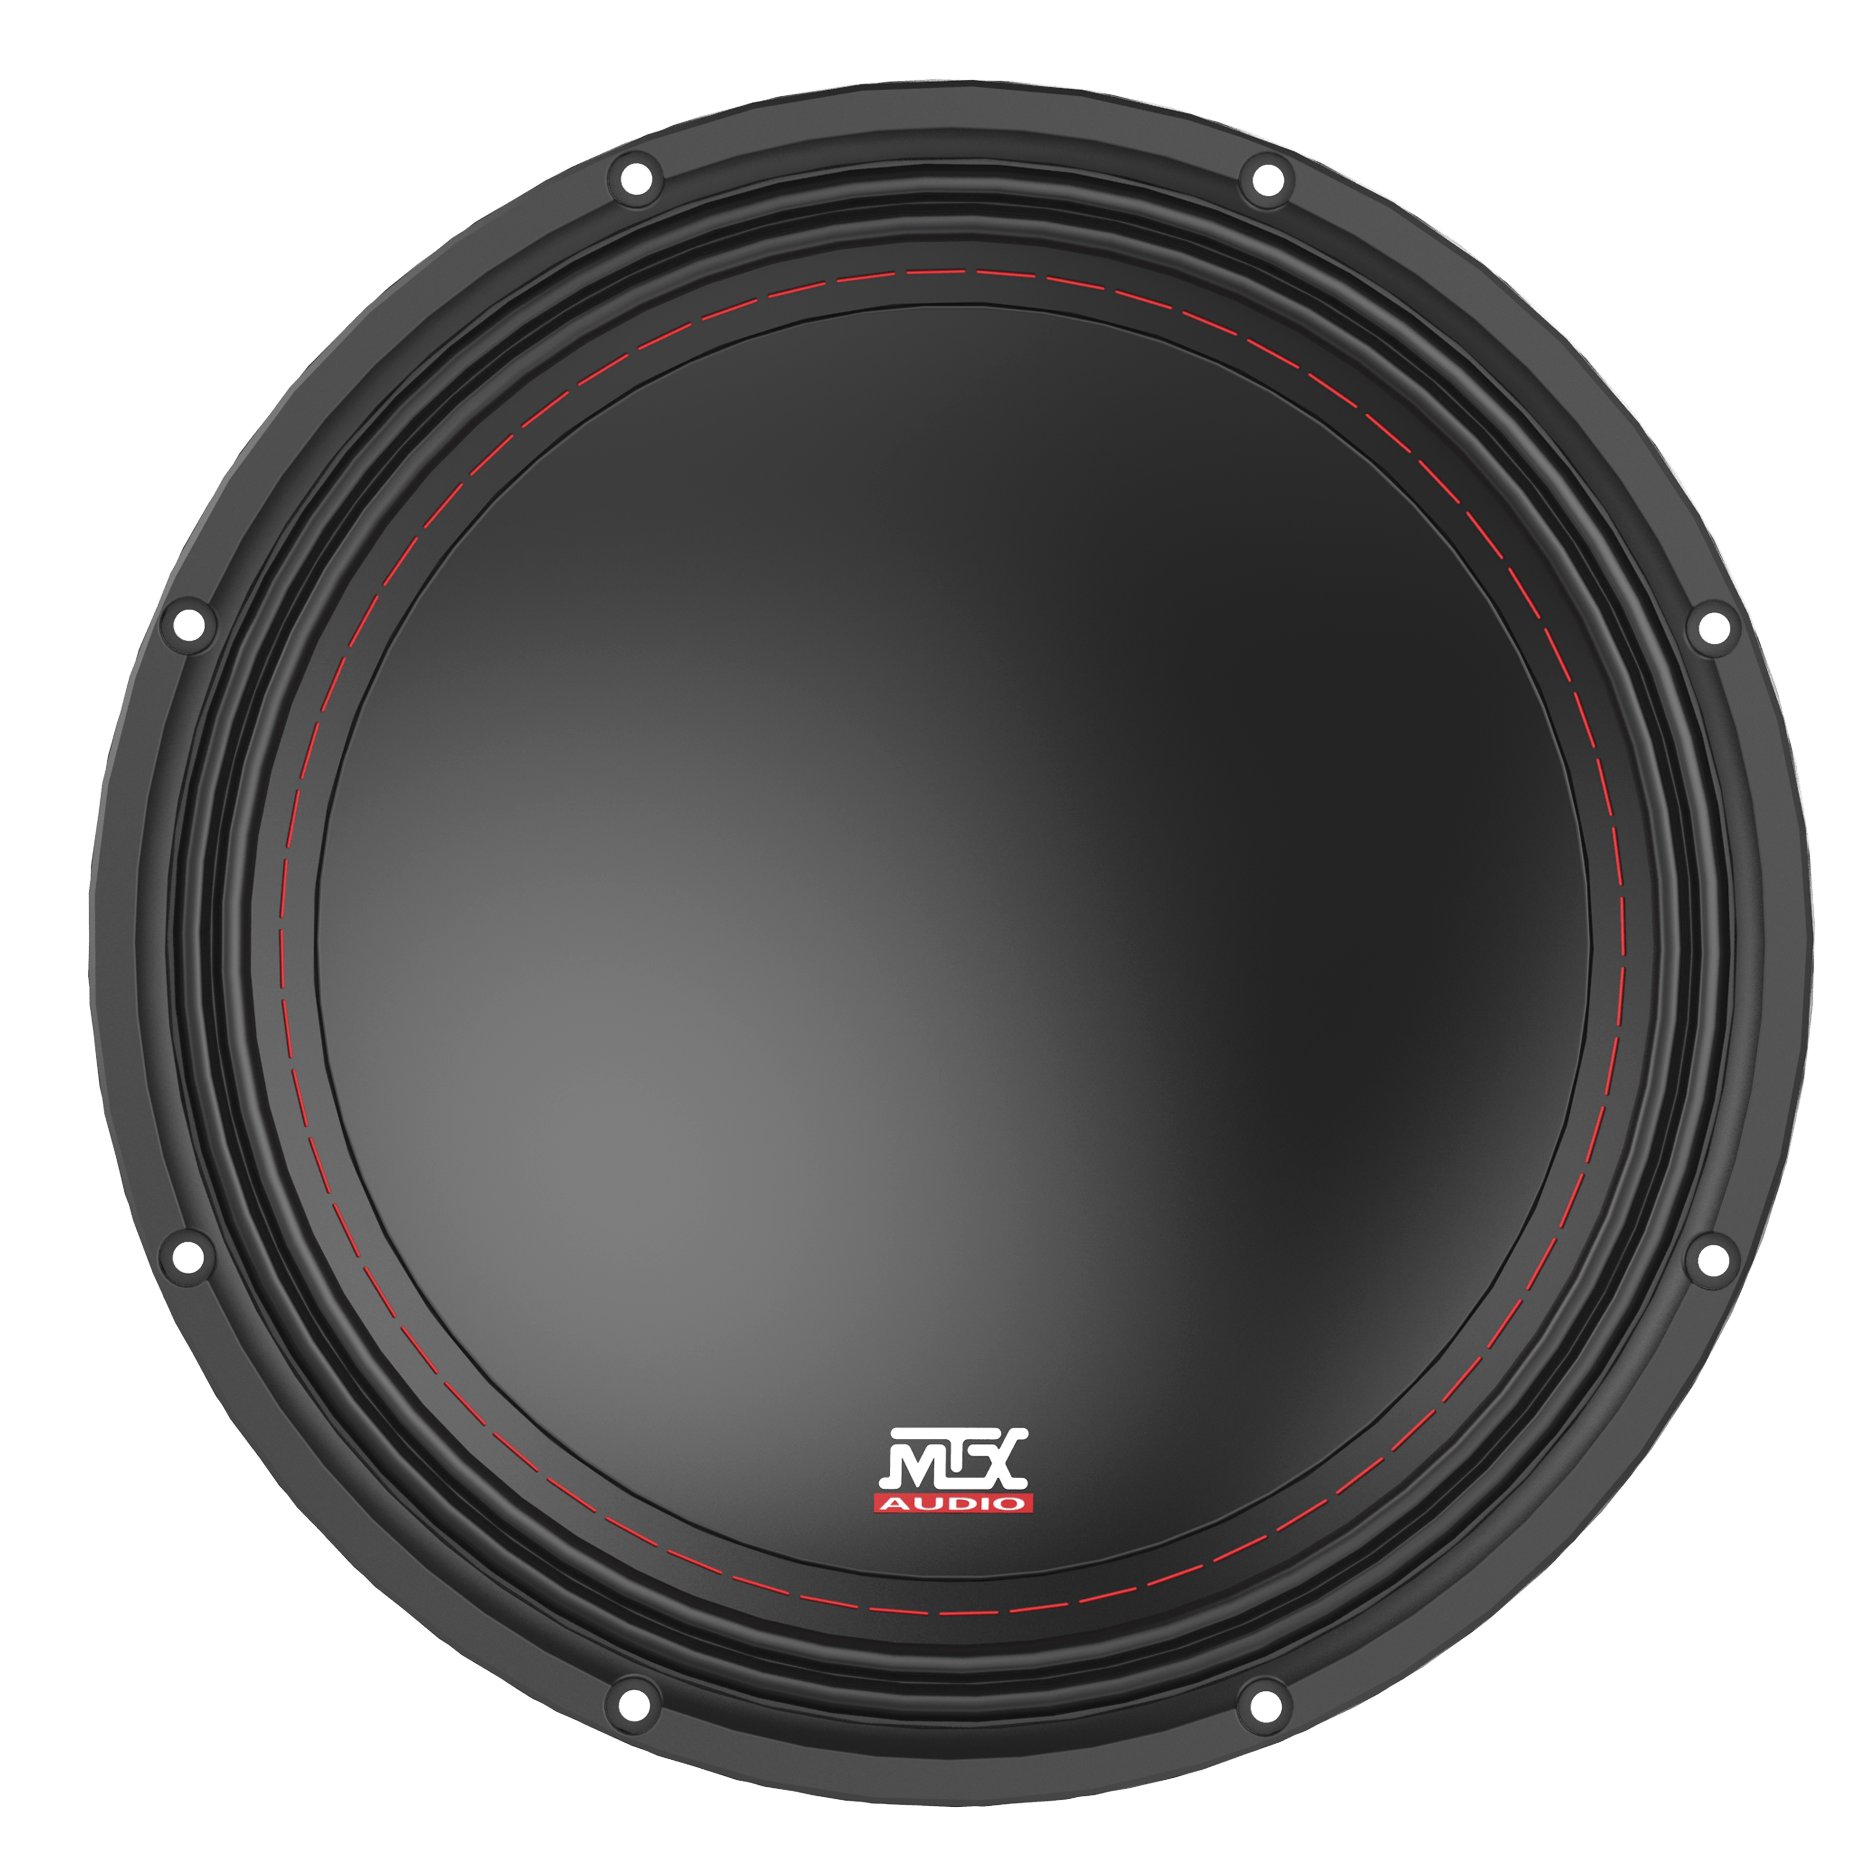 hight resolution of mtx subwoofer wiring diagram wiring diagram centremtx subwoofer wiring diagrams schematic diagrammtx subwoofer wiring diagram 15